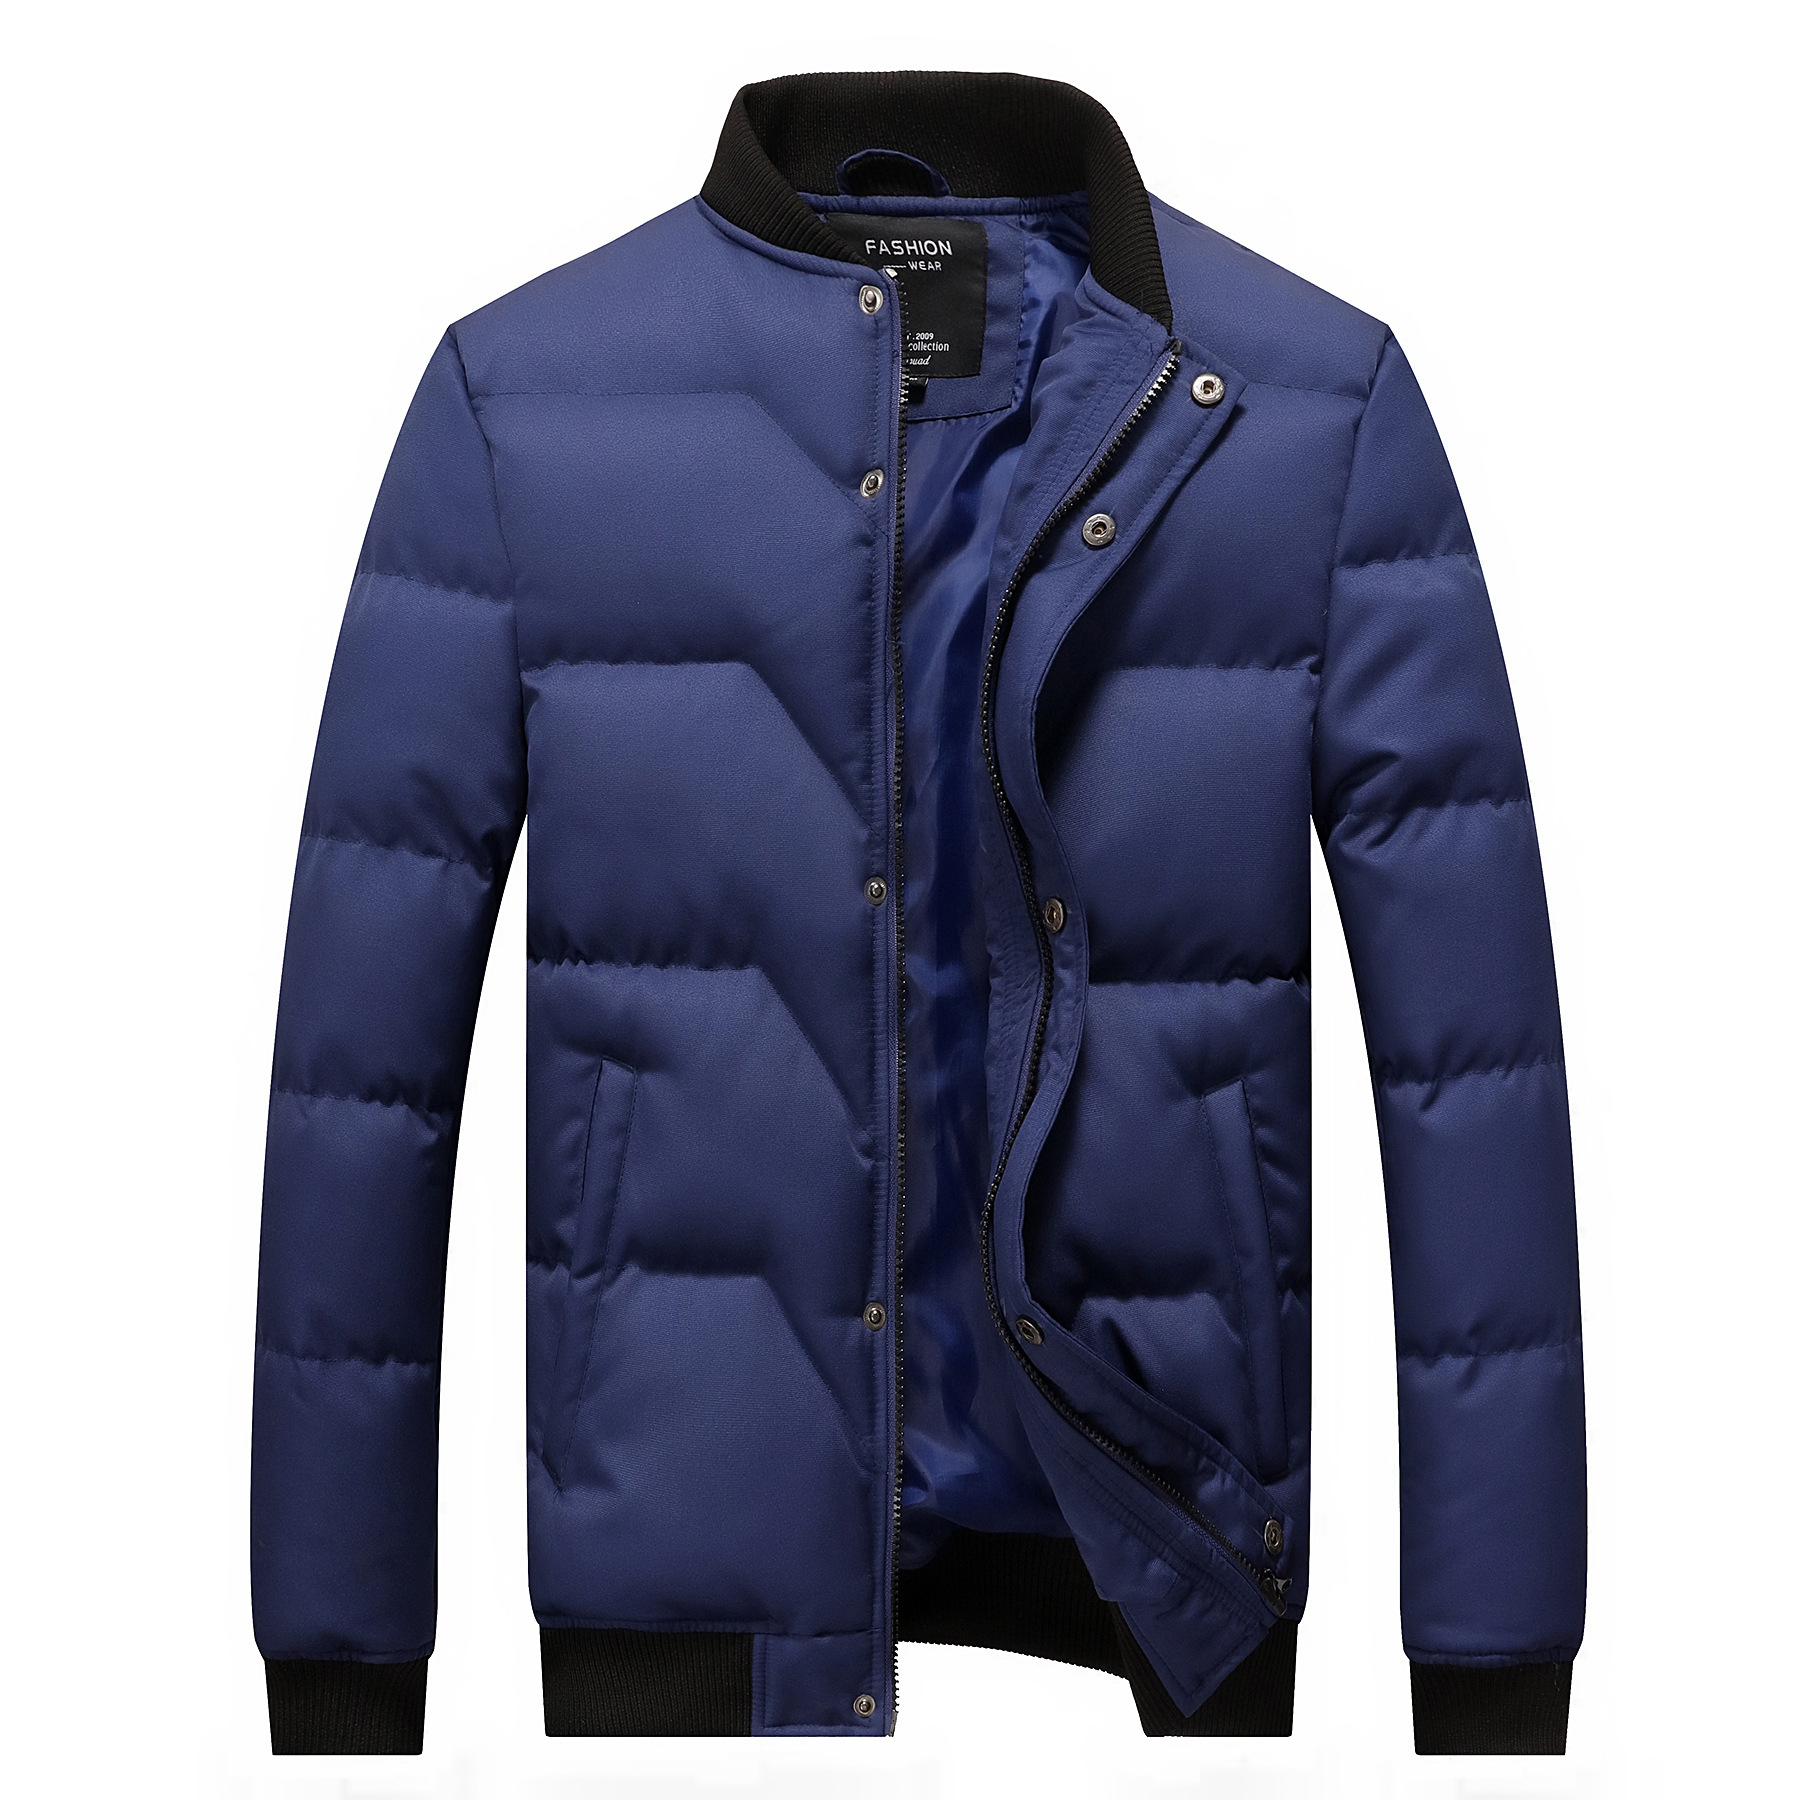 Winter Jacket Men 2020 Brand New Quilted Jackets Stand Collar Cotton Padded Thick Warm Coast For Man Outwear M-4XL